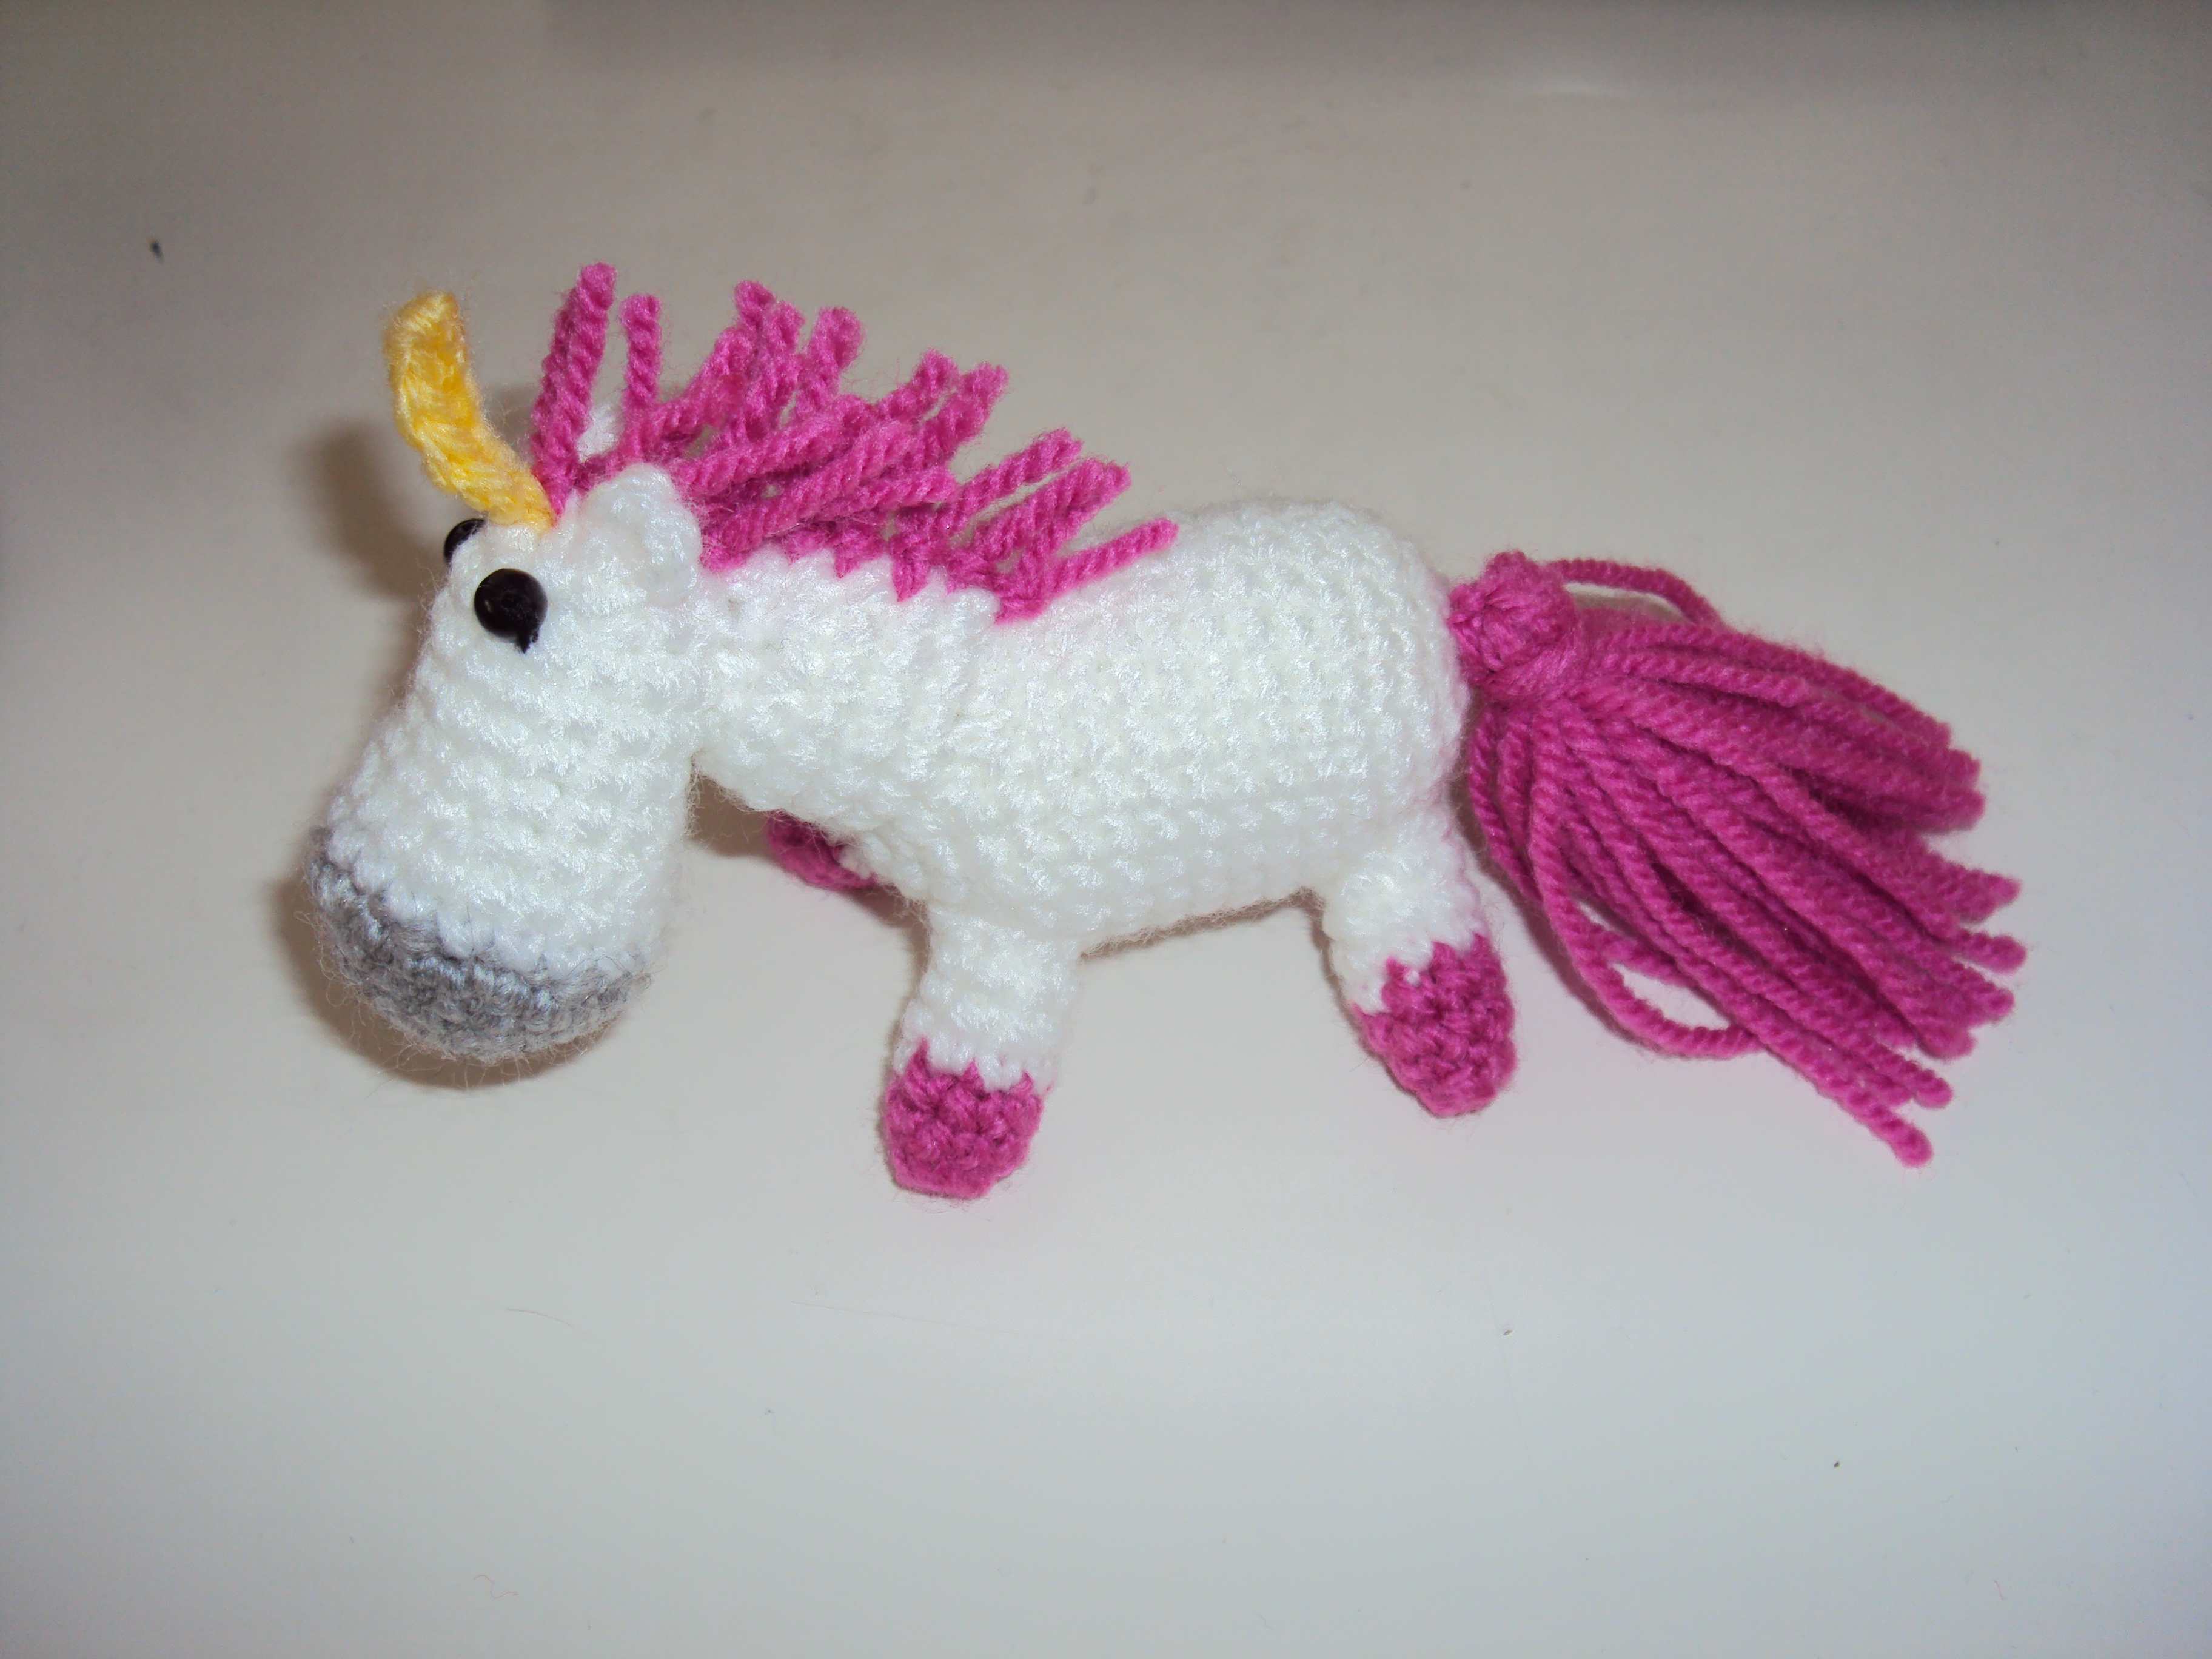 Ravelry: Lil' Fluffy Unicorn Despicable Me pattern by Rachel Hoe | 2736x3648